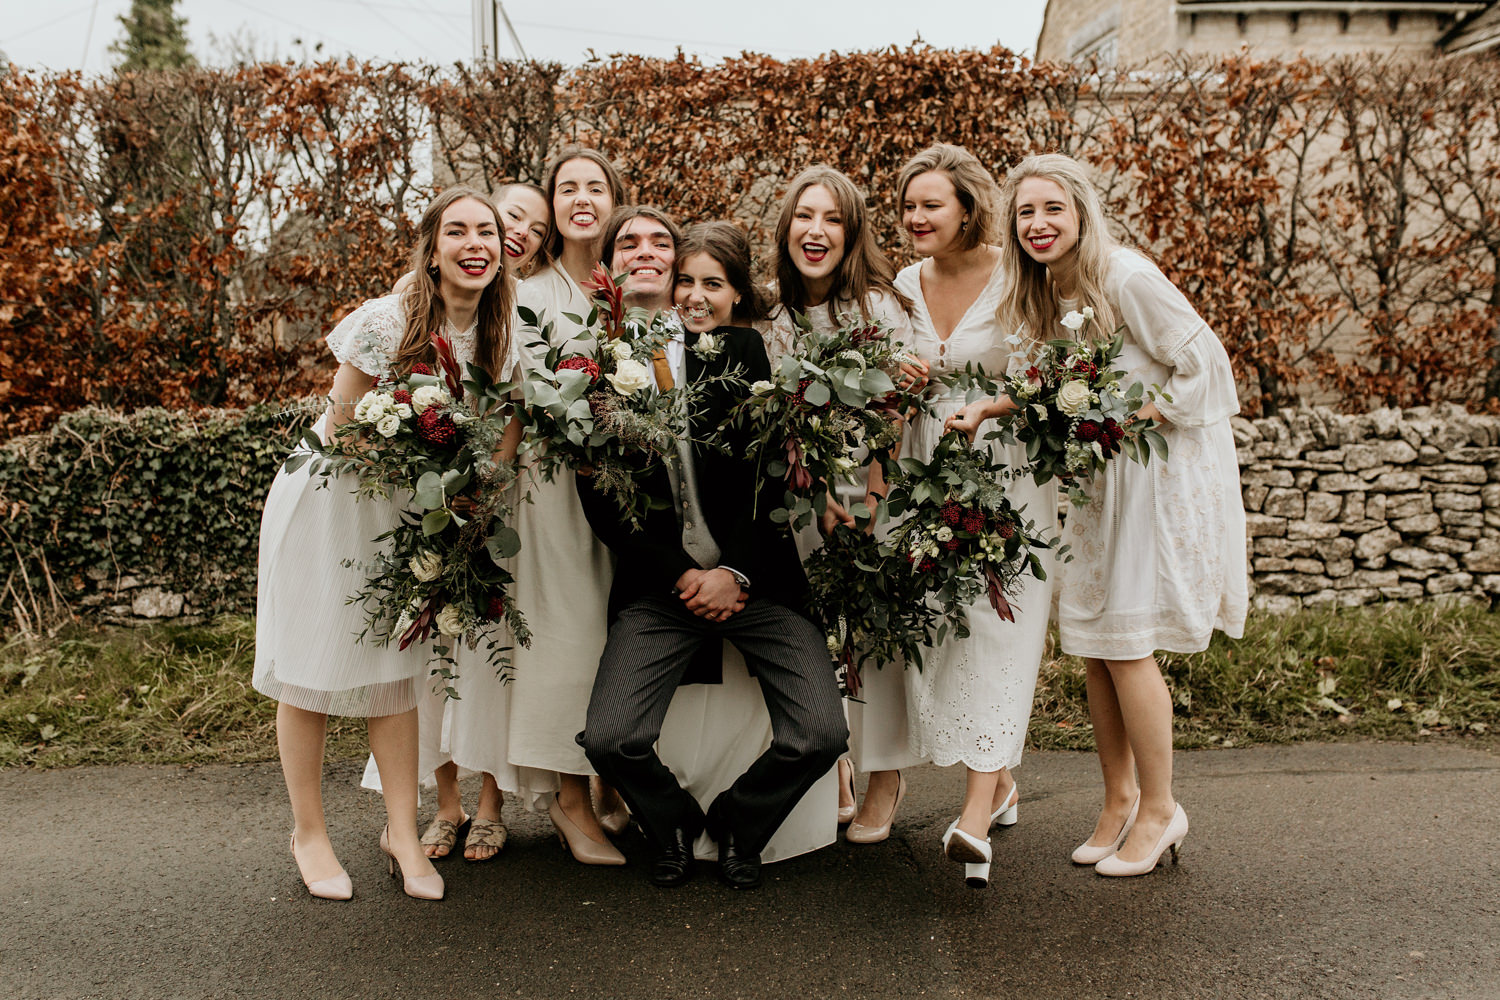 bride and bridesmaids dressed in white , posing for a fun group photo